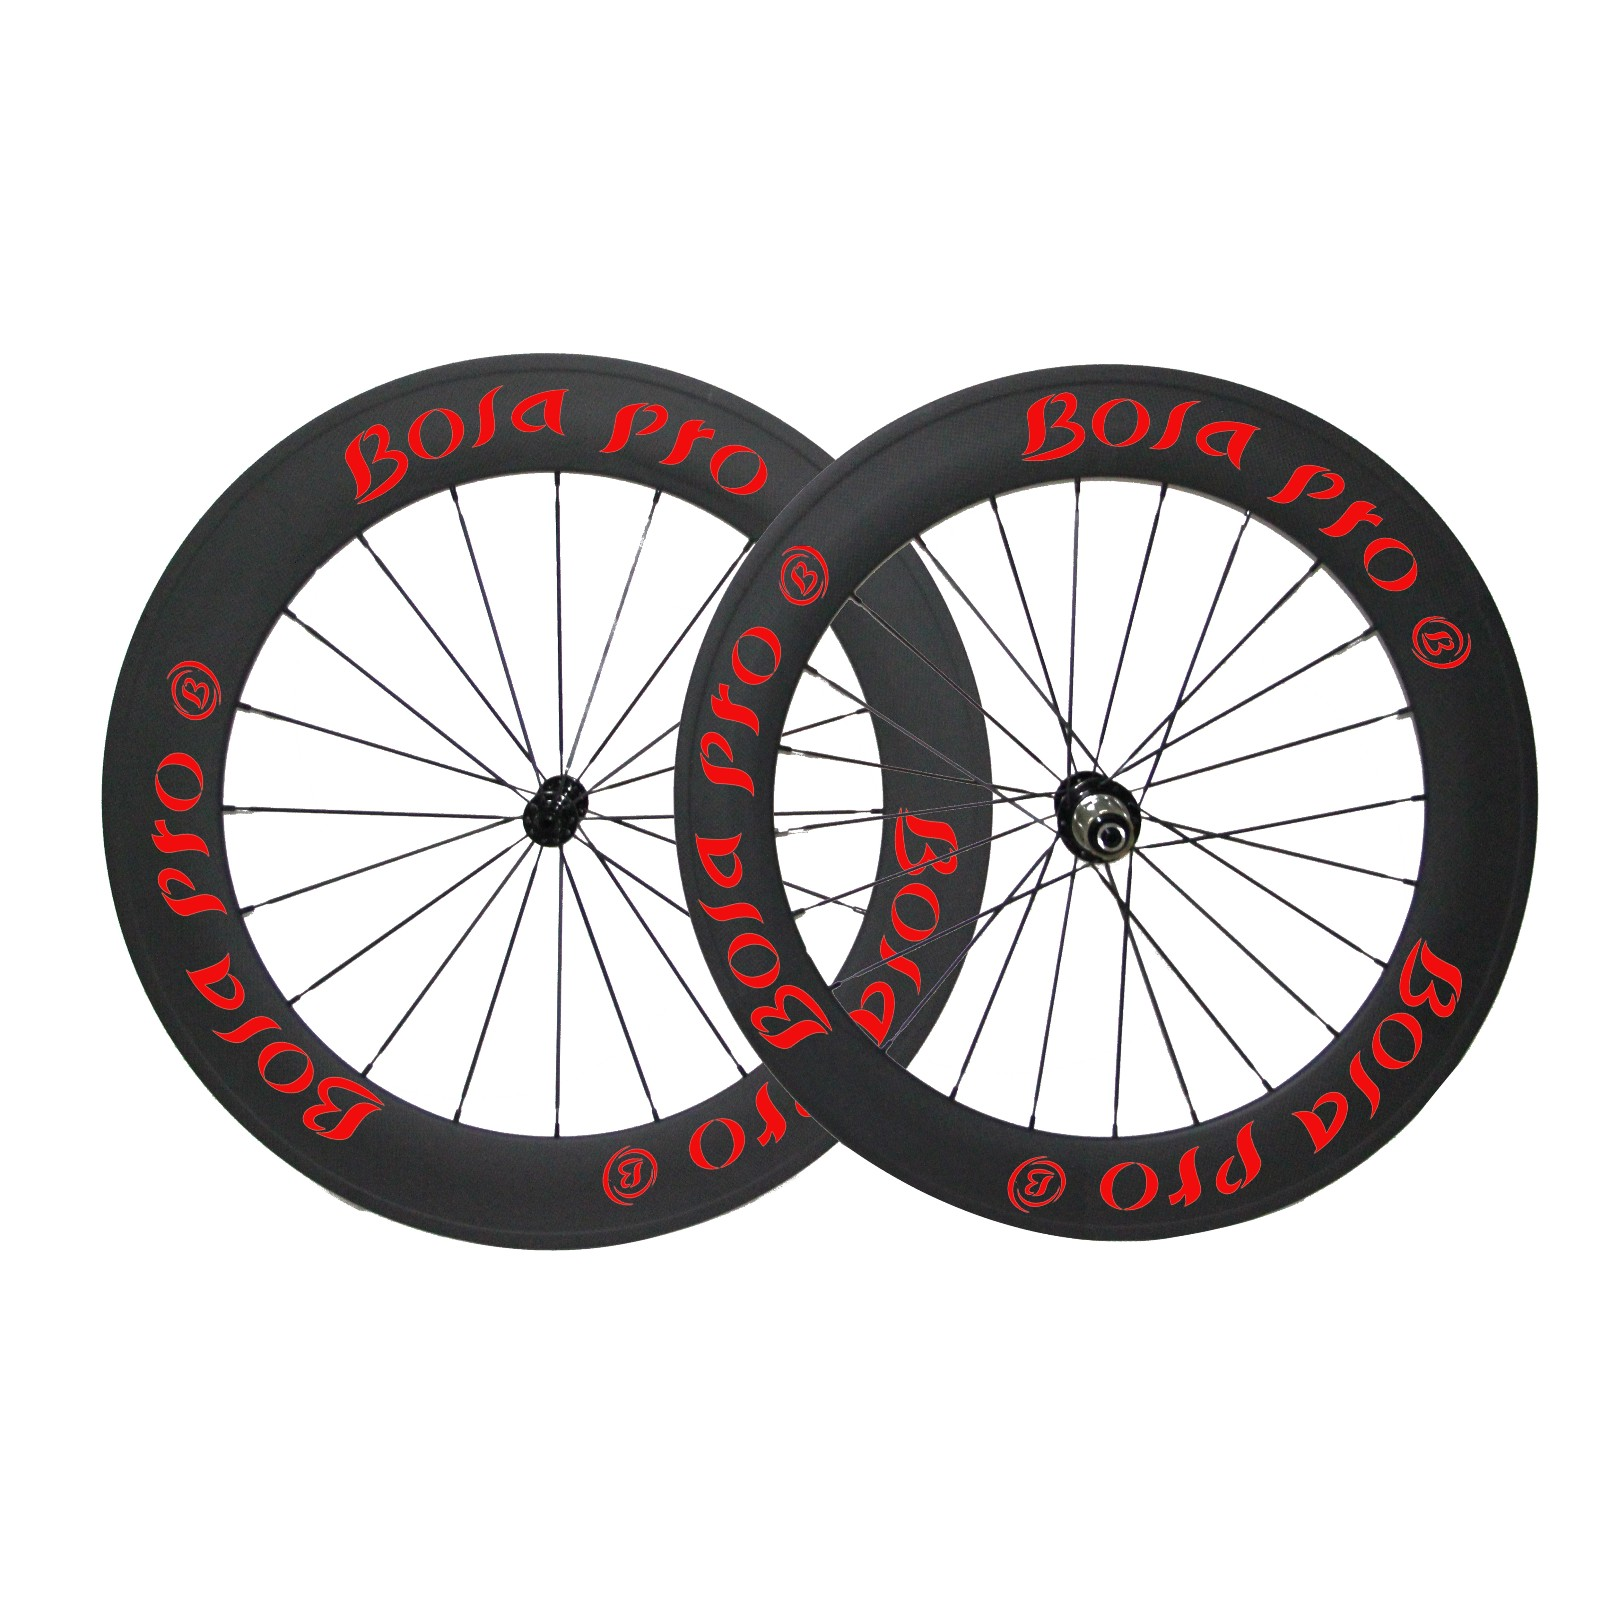 700C 55mm carbon track wheelset with center lock and straight pull hub